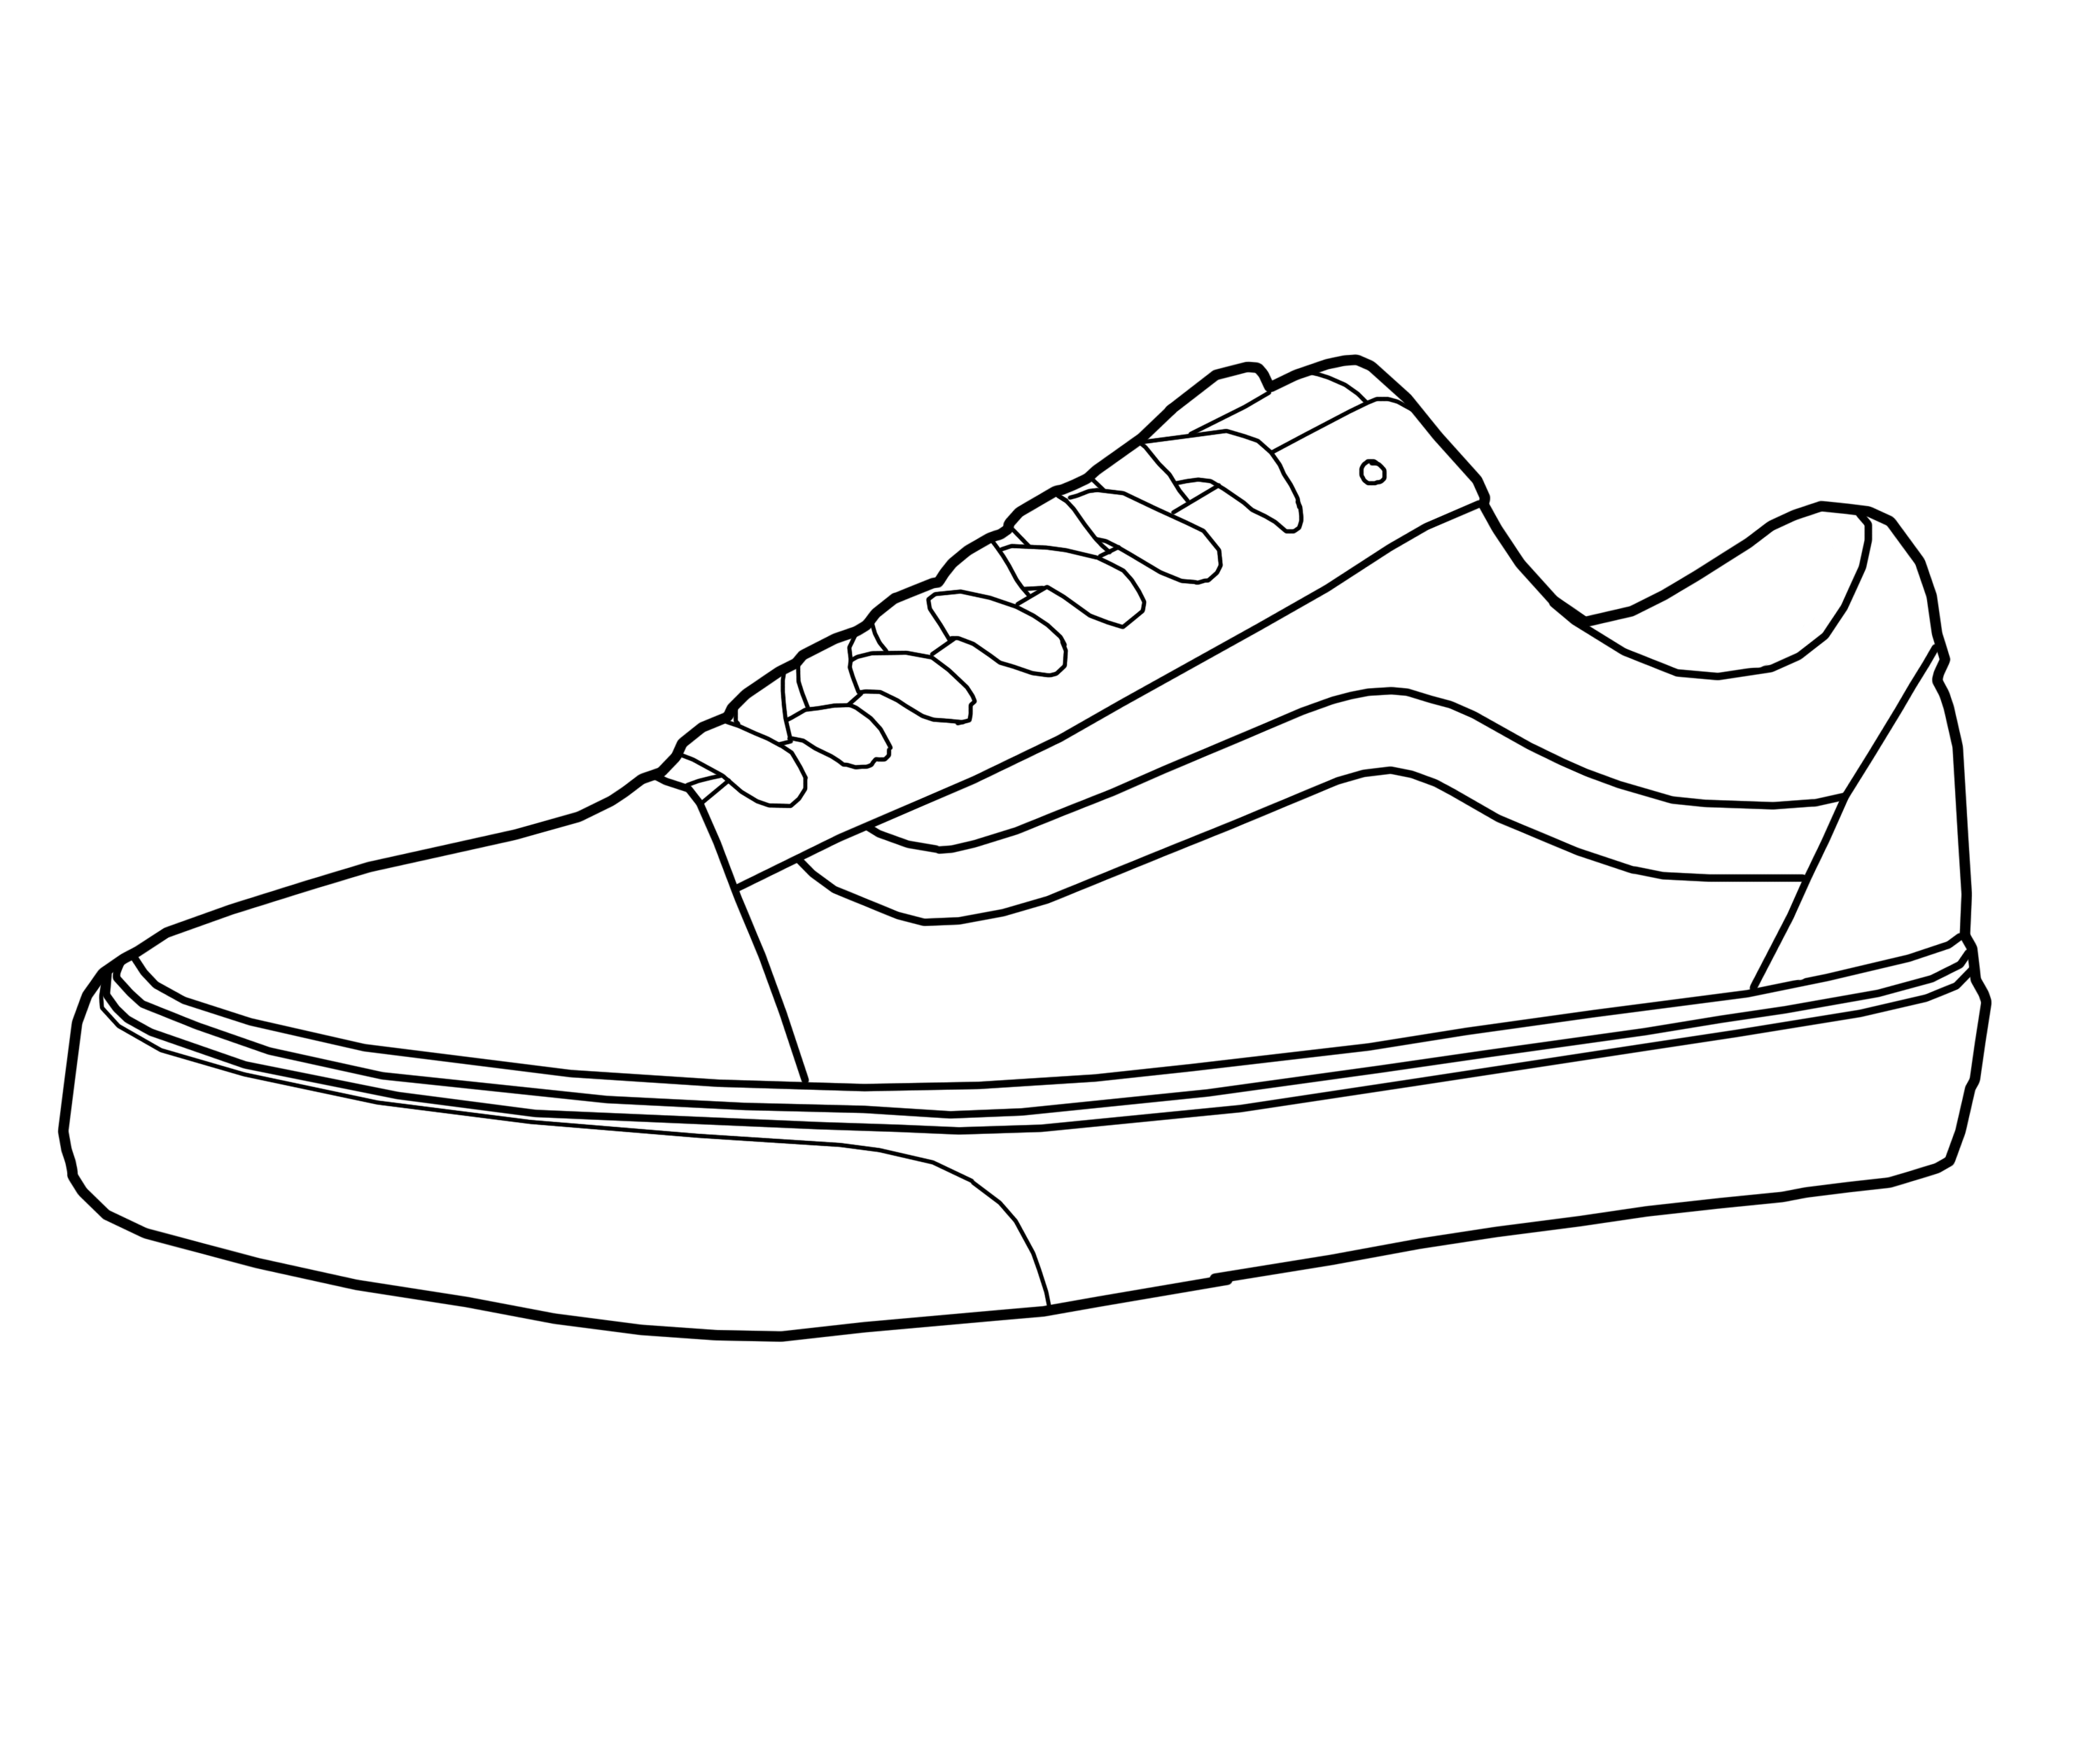 Drawn vans easy #13